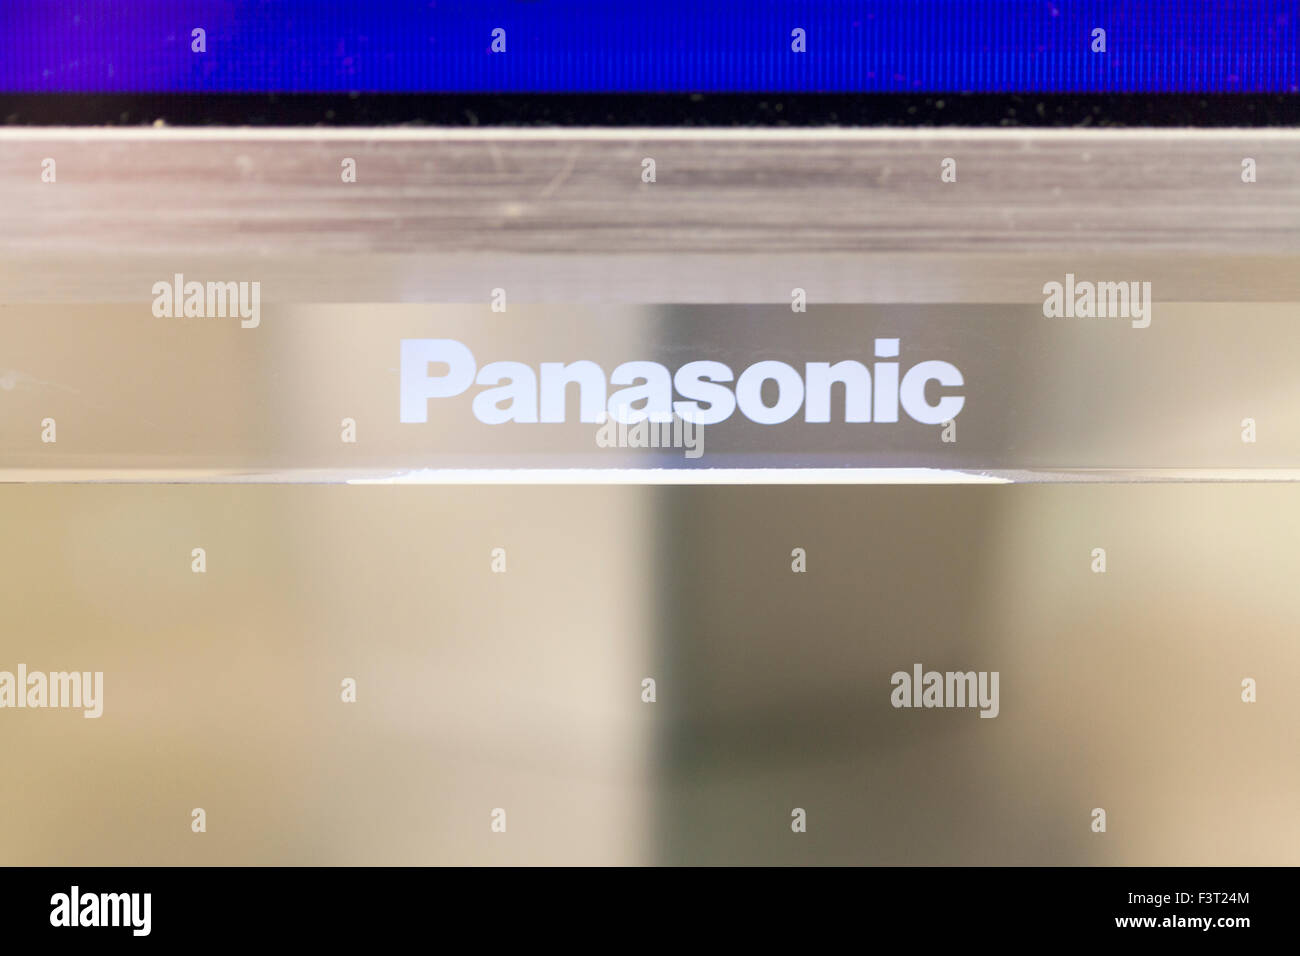 Panasonic name on TV electronic electronics logo white copy space - Stock Image